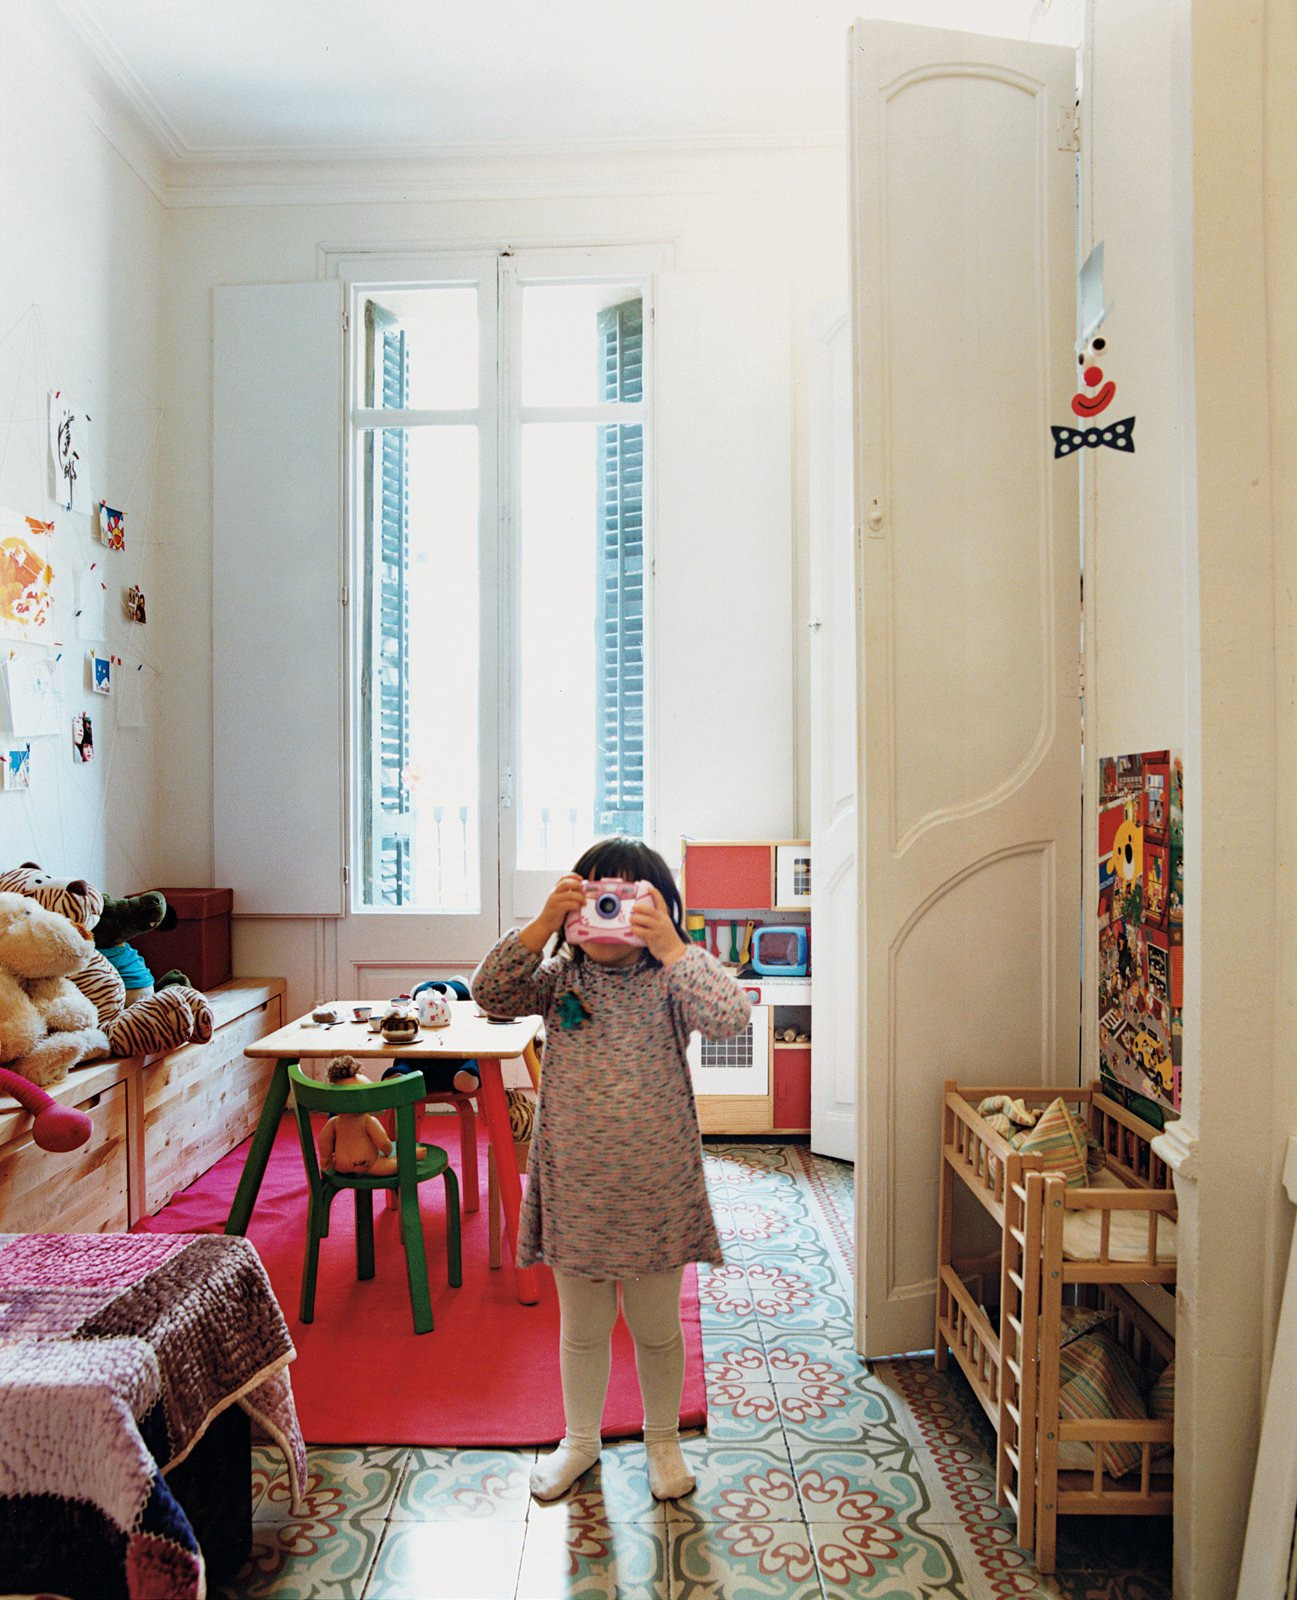 """Kids Room and Bedroom Room Type """"It's typical for Barcelona buildings from this period that the bedrooms are divided with decorative plaster columns and a cornice to create a curtained-off alcove for the bed, separating it from the more public part of the rest of the room. We opened up our bedroom, but we conserved that feature in Hanna's room, and now every morning she wants to play dress-up.""""  Photo 4 of 6 in Renovating Old and New in Barcelona"""